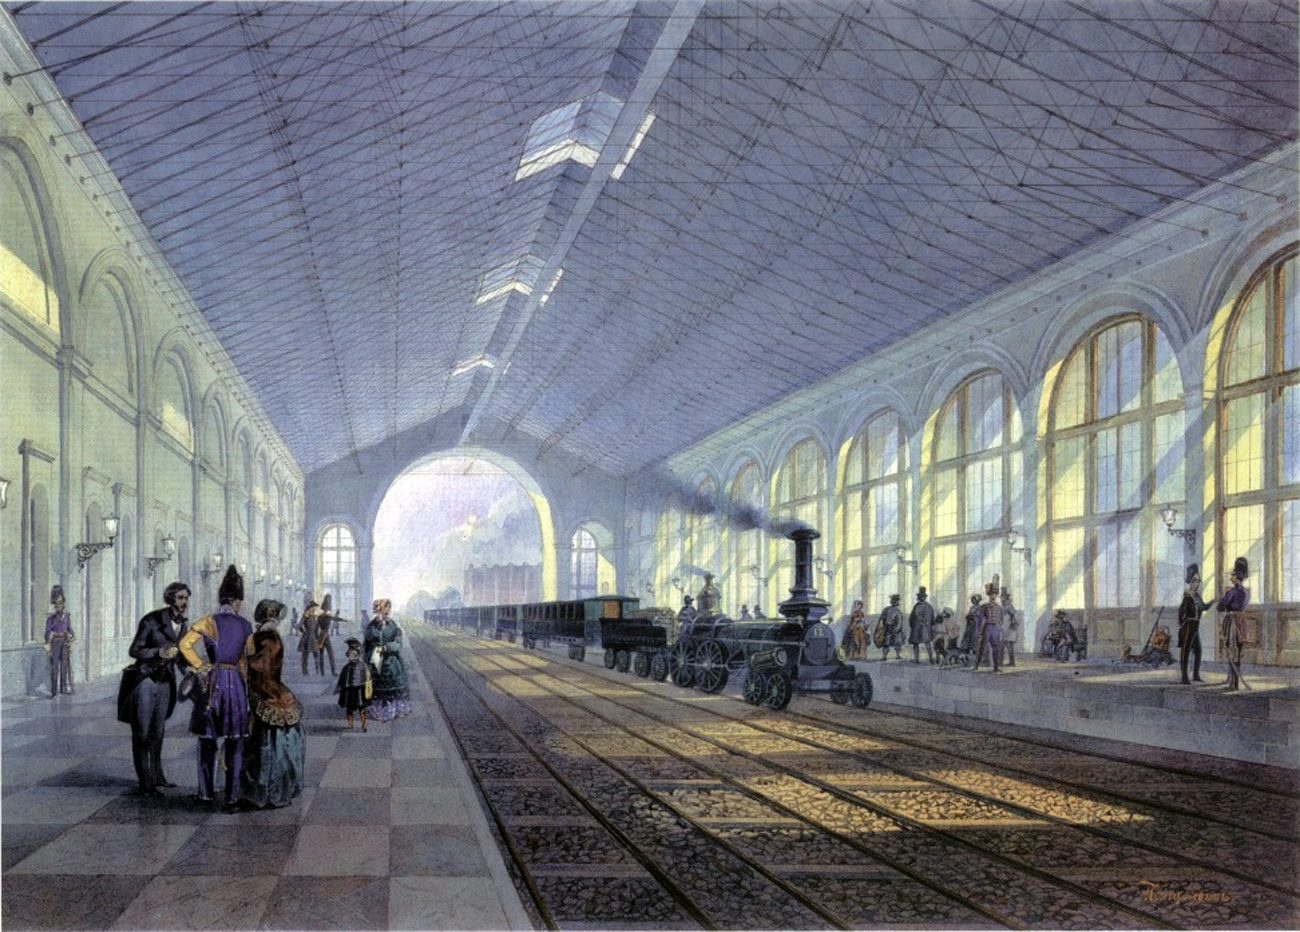 Estación en San Petersburgo.